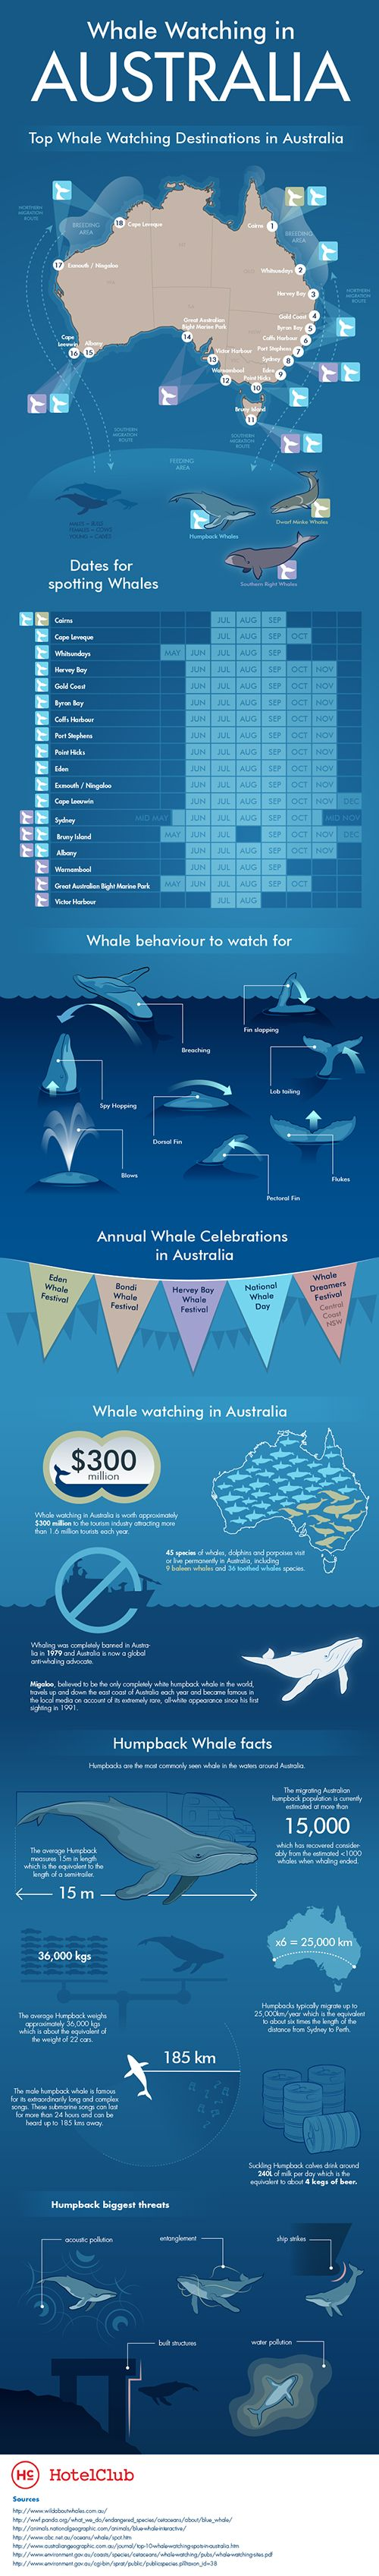 Planning on your next vacation trip? Want to go Whale Watching? Australia is considered to be one of the best places to see whales in the world. The most common sighted whales is - humpbacks. However, there is also the chance to ascertain other species, like blue whales, dwarf minke whales and southern right whales from several spots along Australia's outline. # We Educate Travellers for More Productive, Efficient and Safer Travel! http://intelligenttravel.com.au/